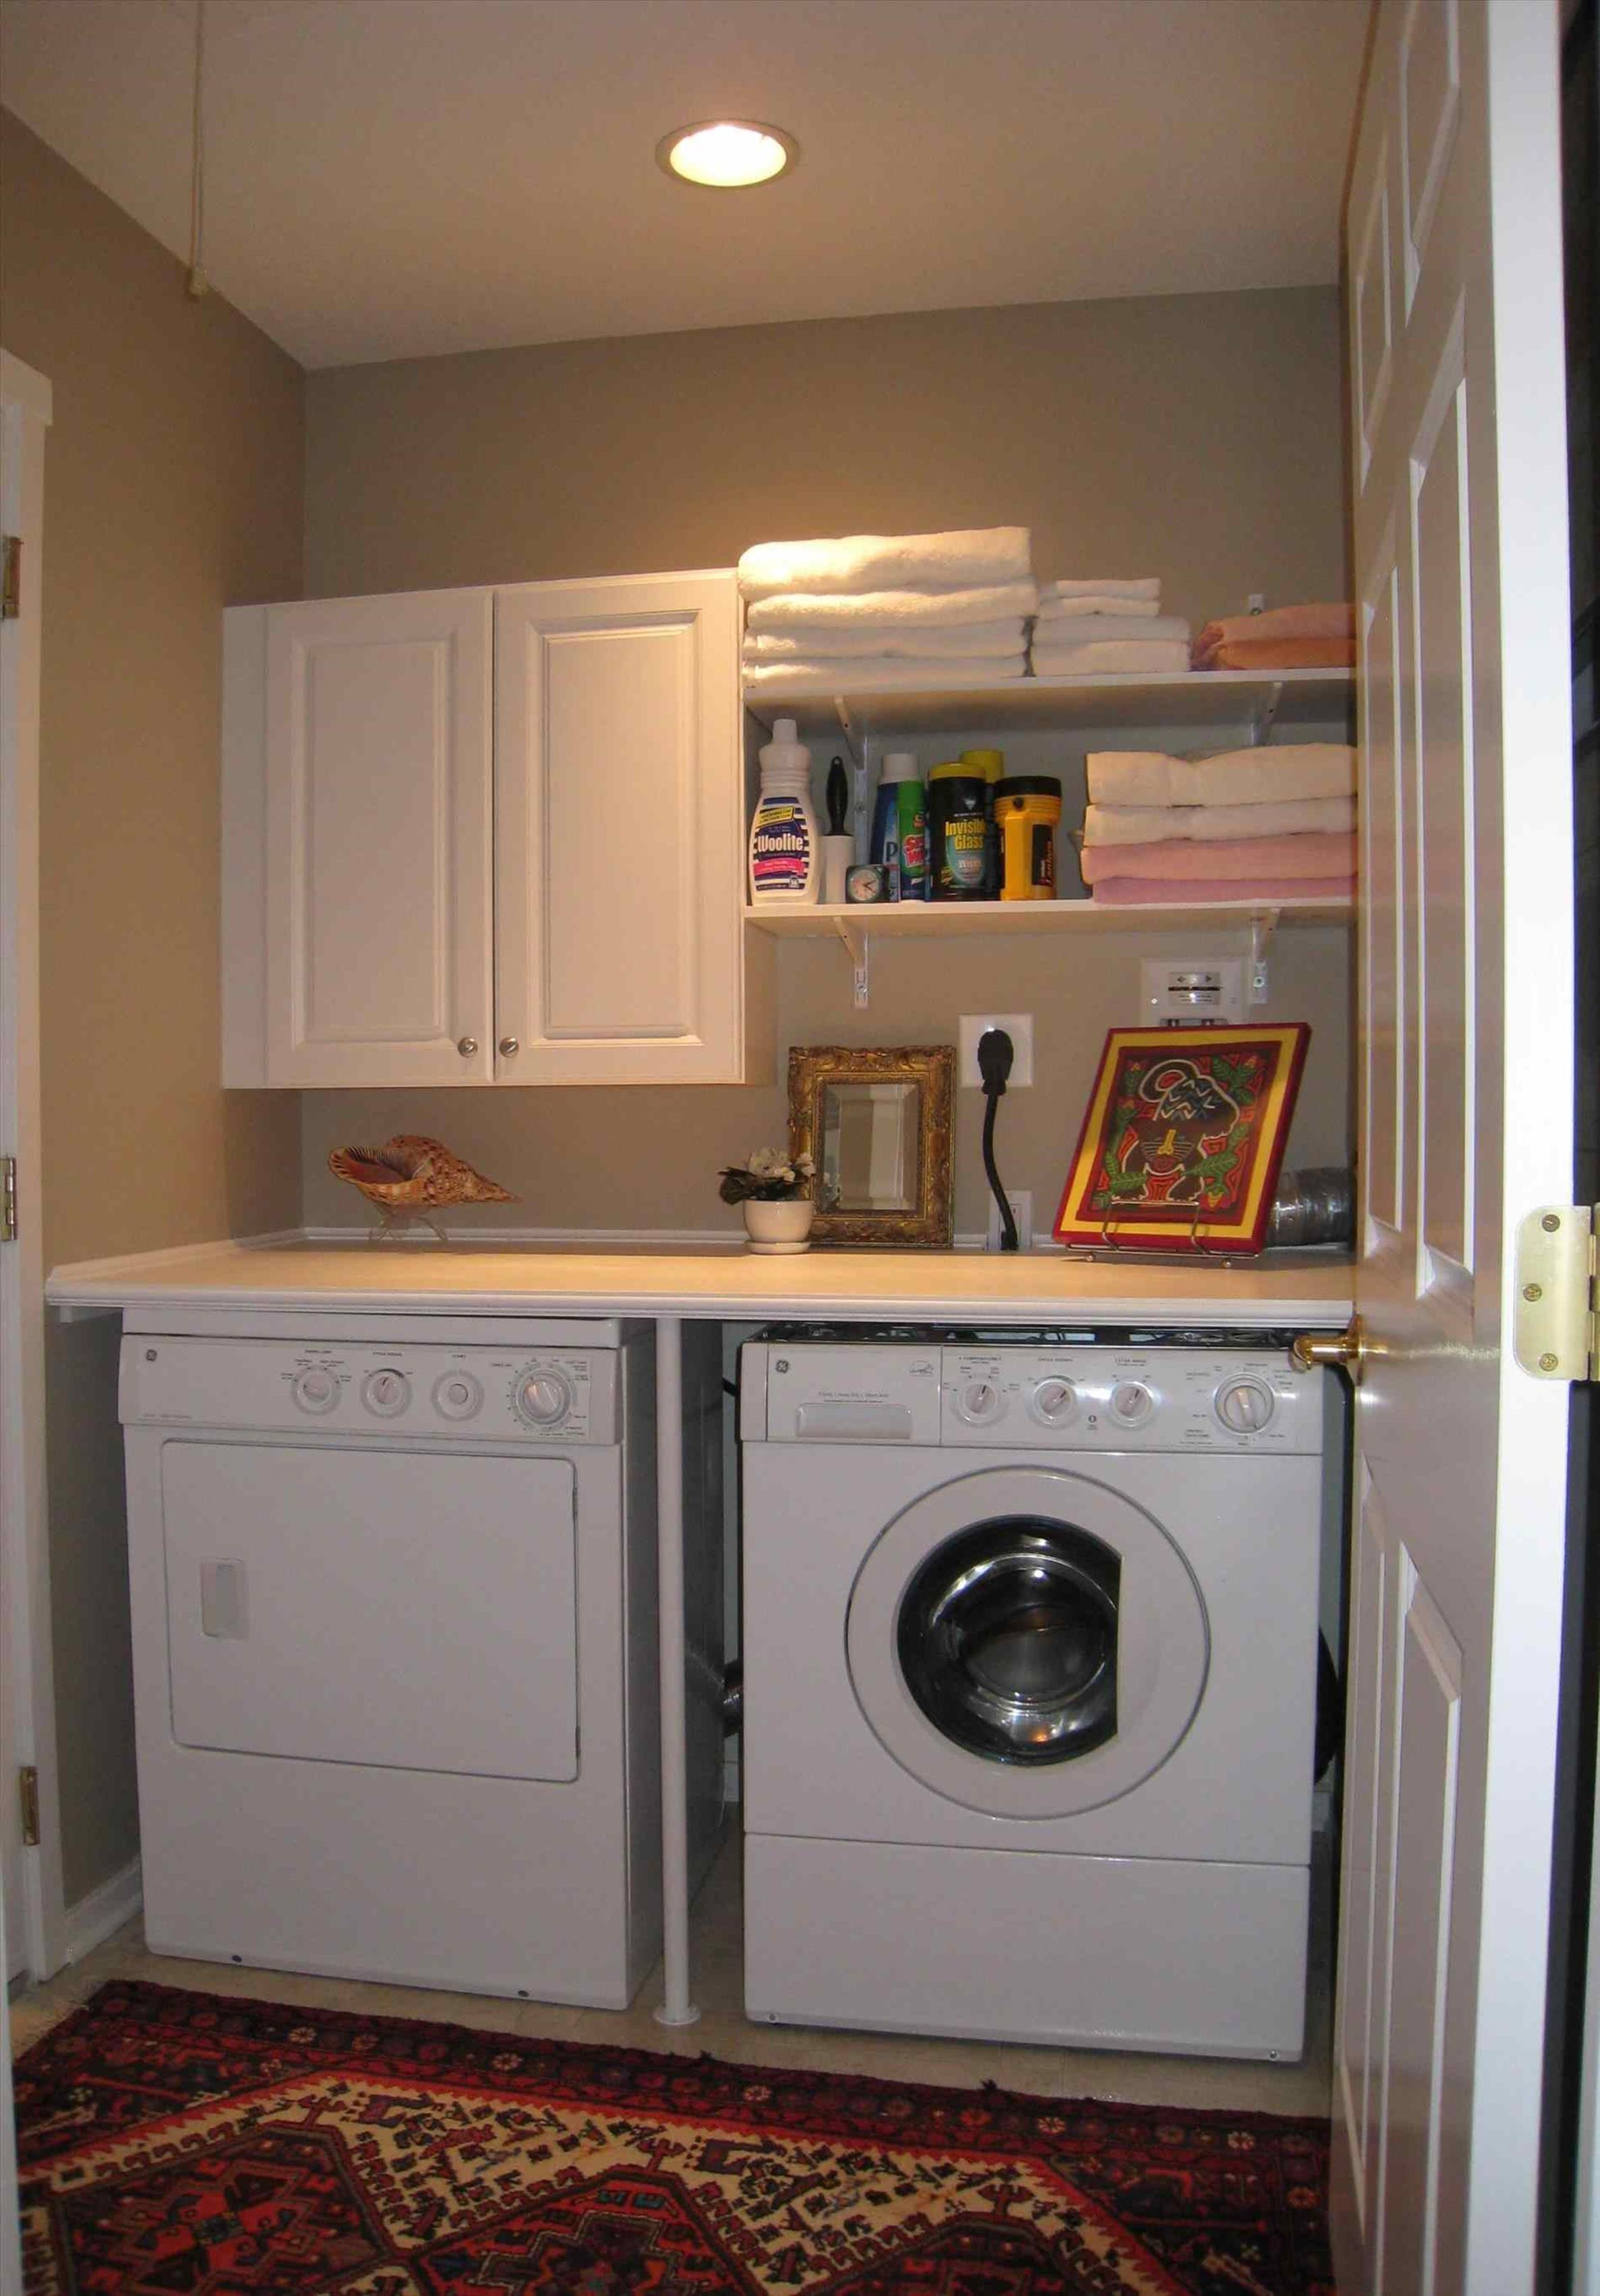 Best Cheap IKEA Cabinets Laundry Room Storage Ideas 33